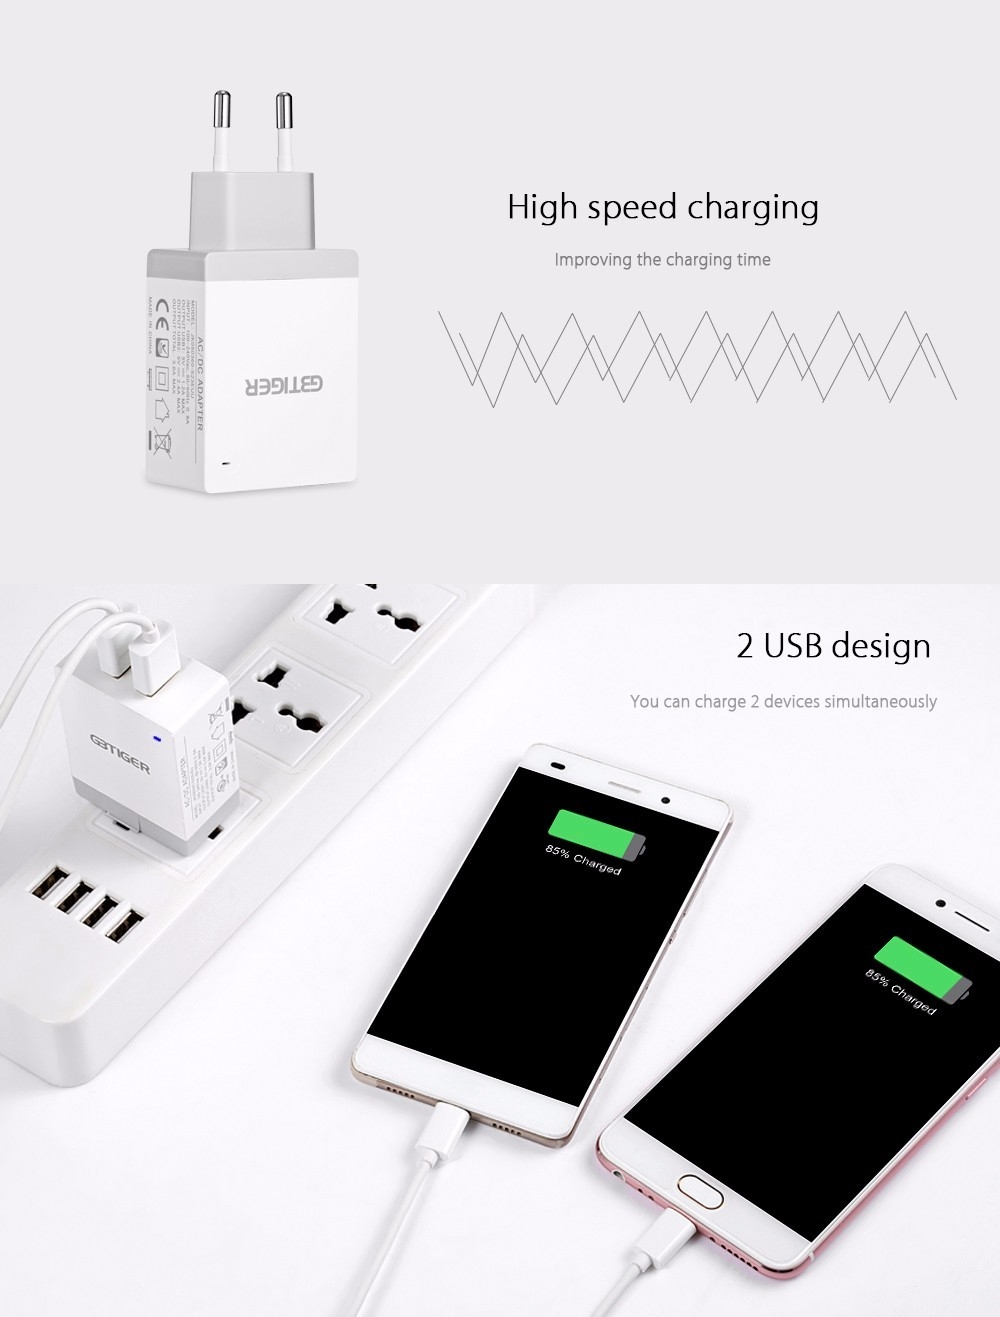 GBTIGER Universal 2 USB 5V 3.6A Multifunctional Quick Travel Adapter with LED Light